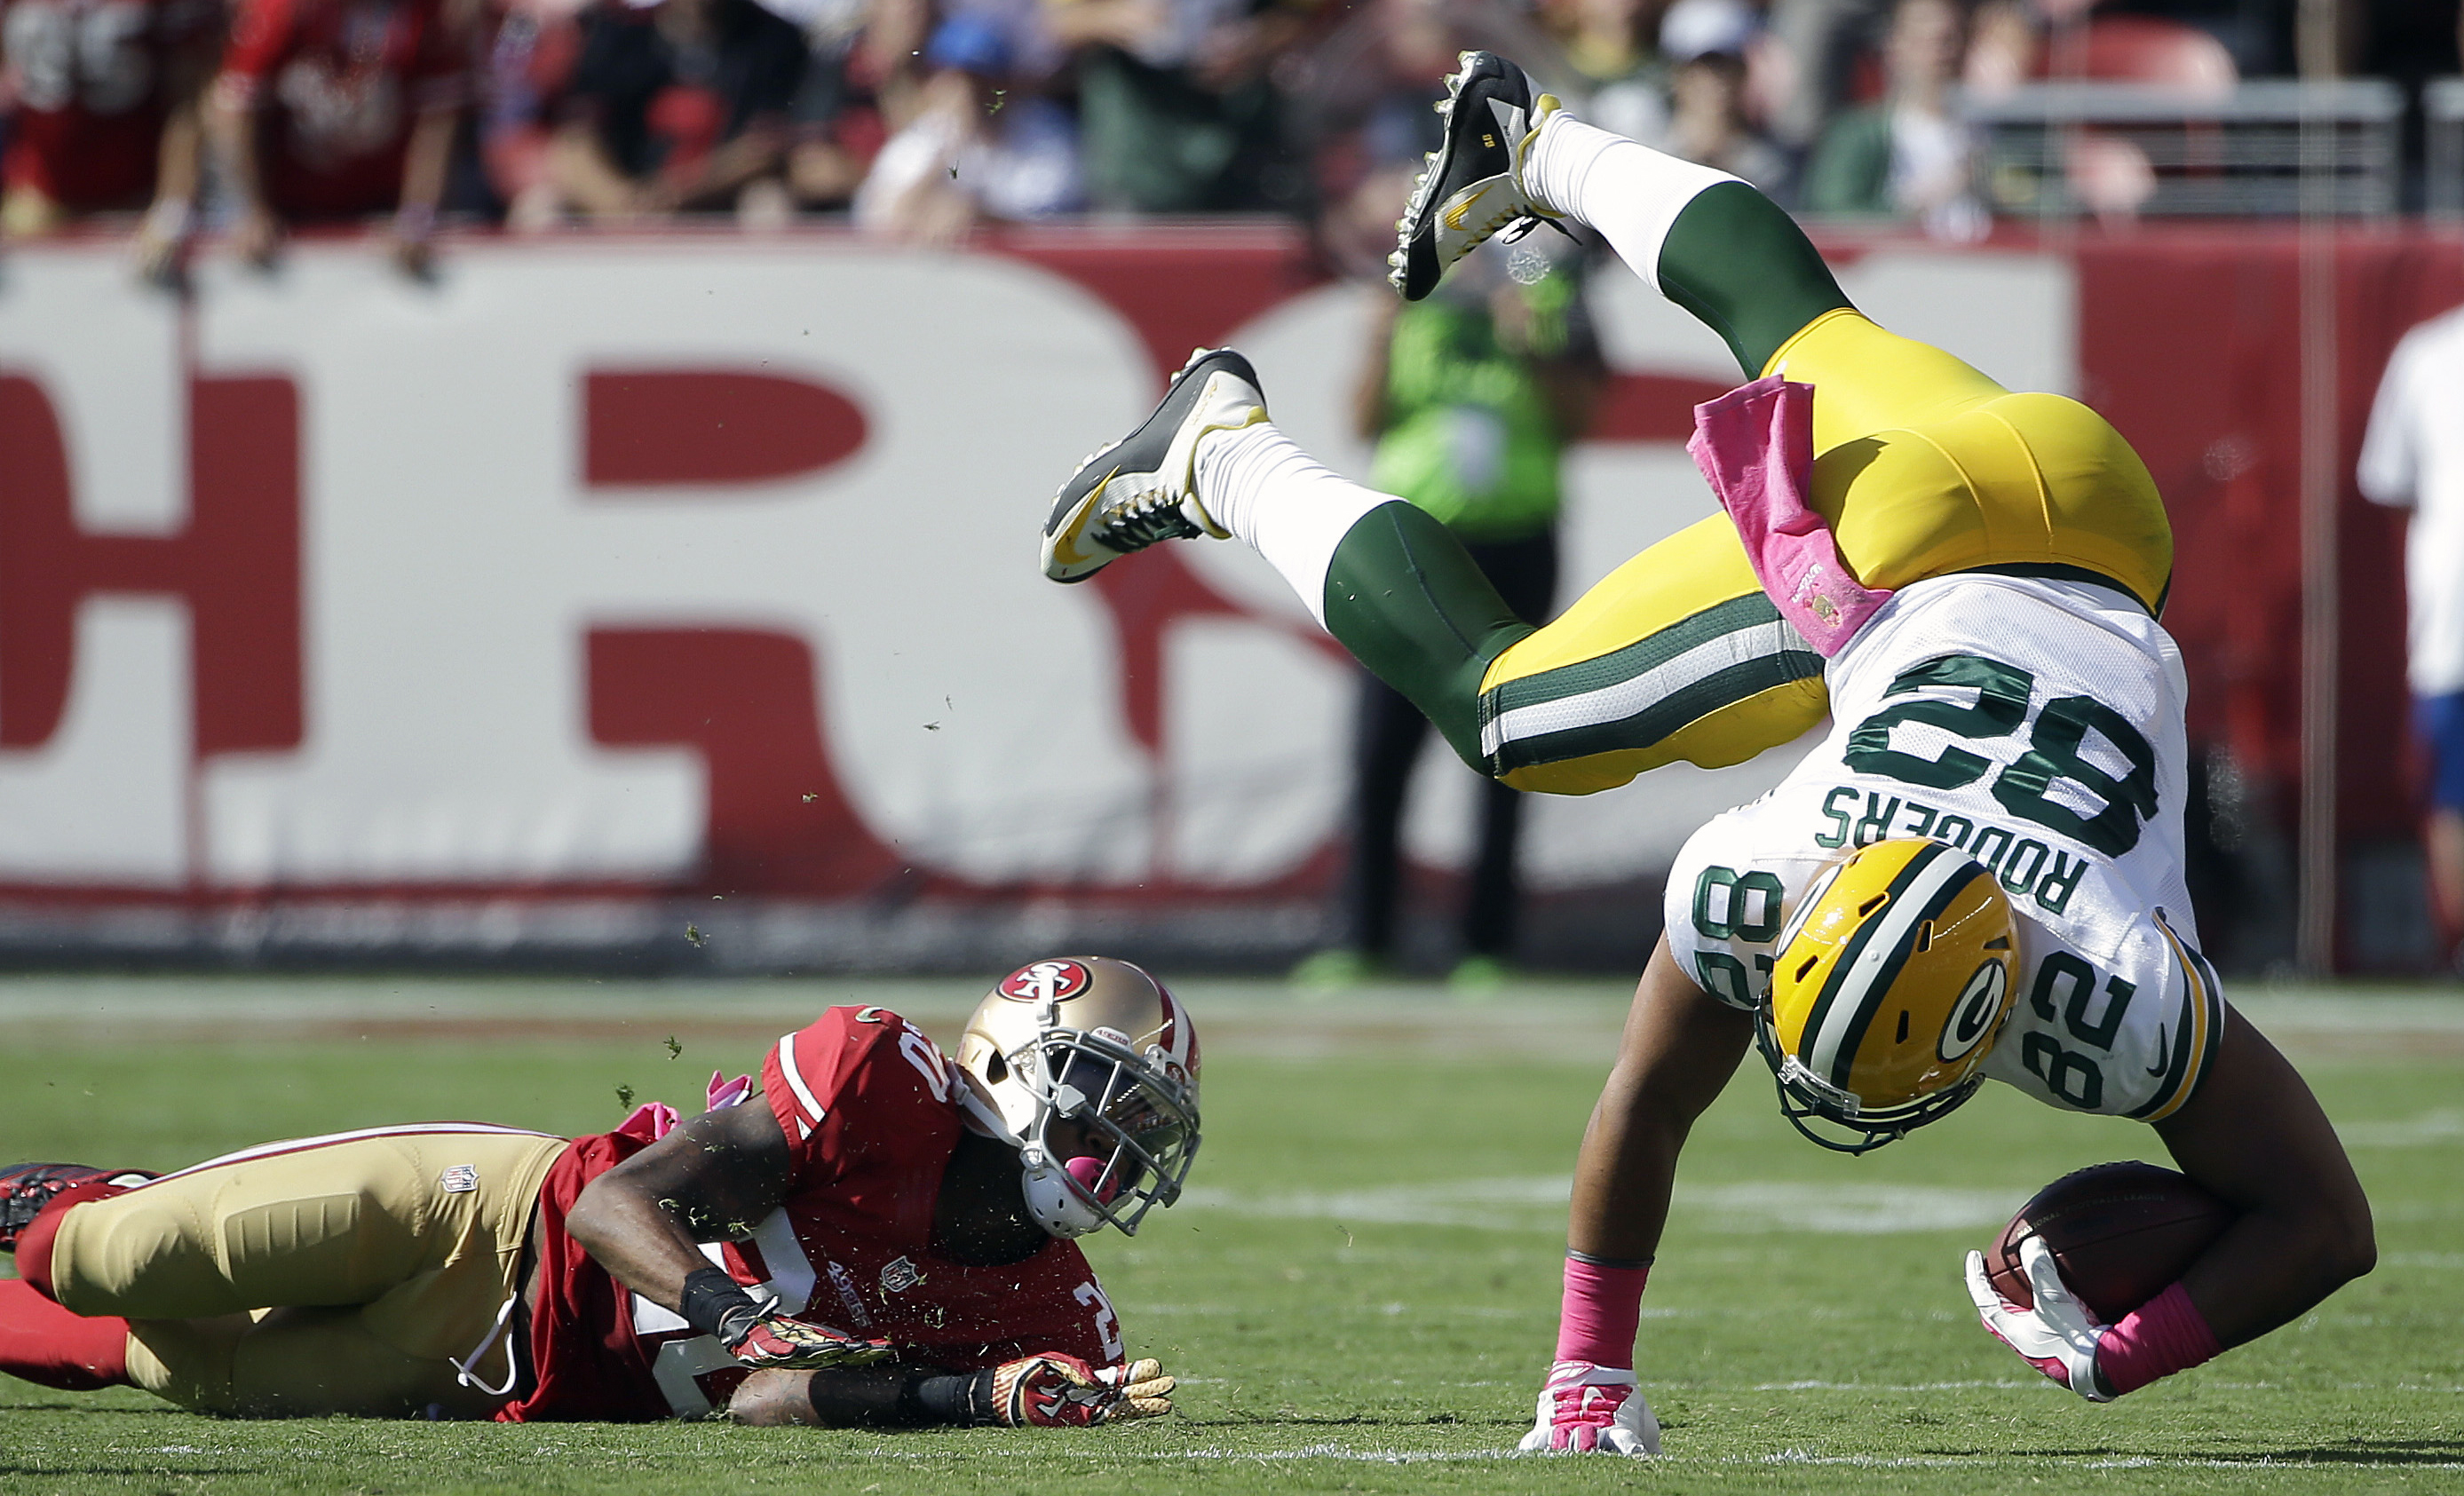 Green Bay Packers tight end Richard Rodgers (82) is tackled by San Francisco 49ers cornerback Kenneth Acker (20) during the second half of an NFL football game in Santa Clara, Calif., Sunday, Oct. 4, 2015. (AP Photo/Marcio Jose Sanchez)